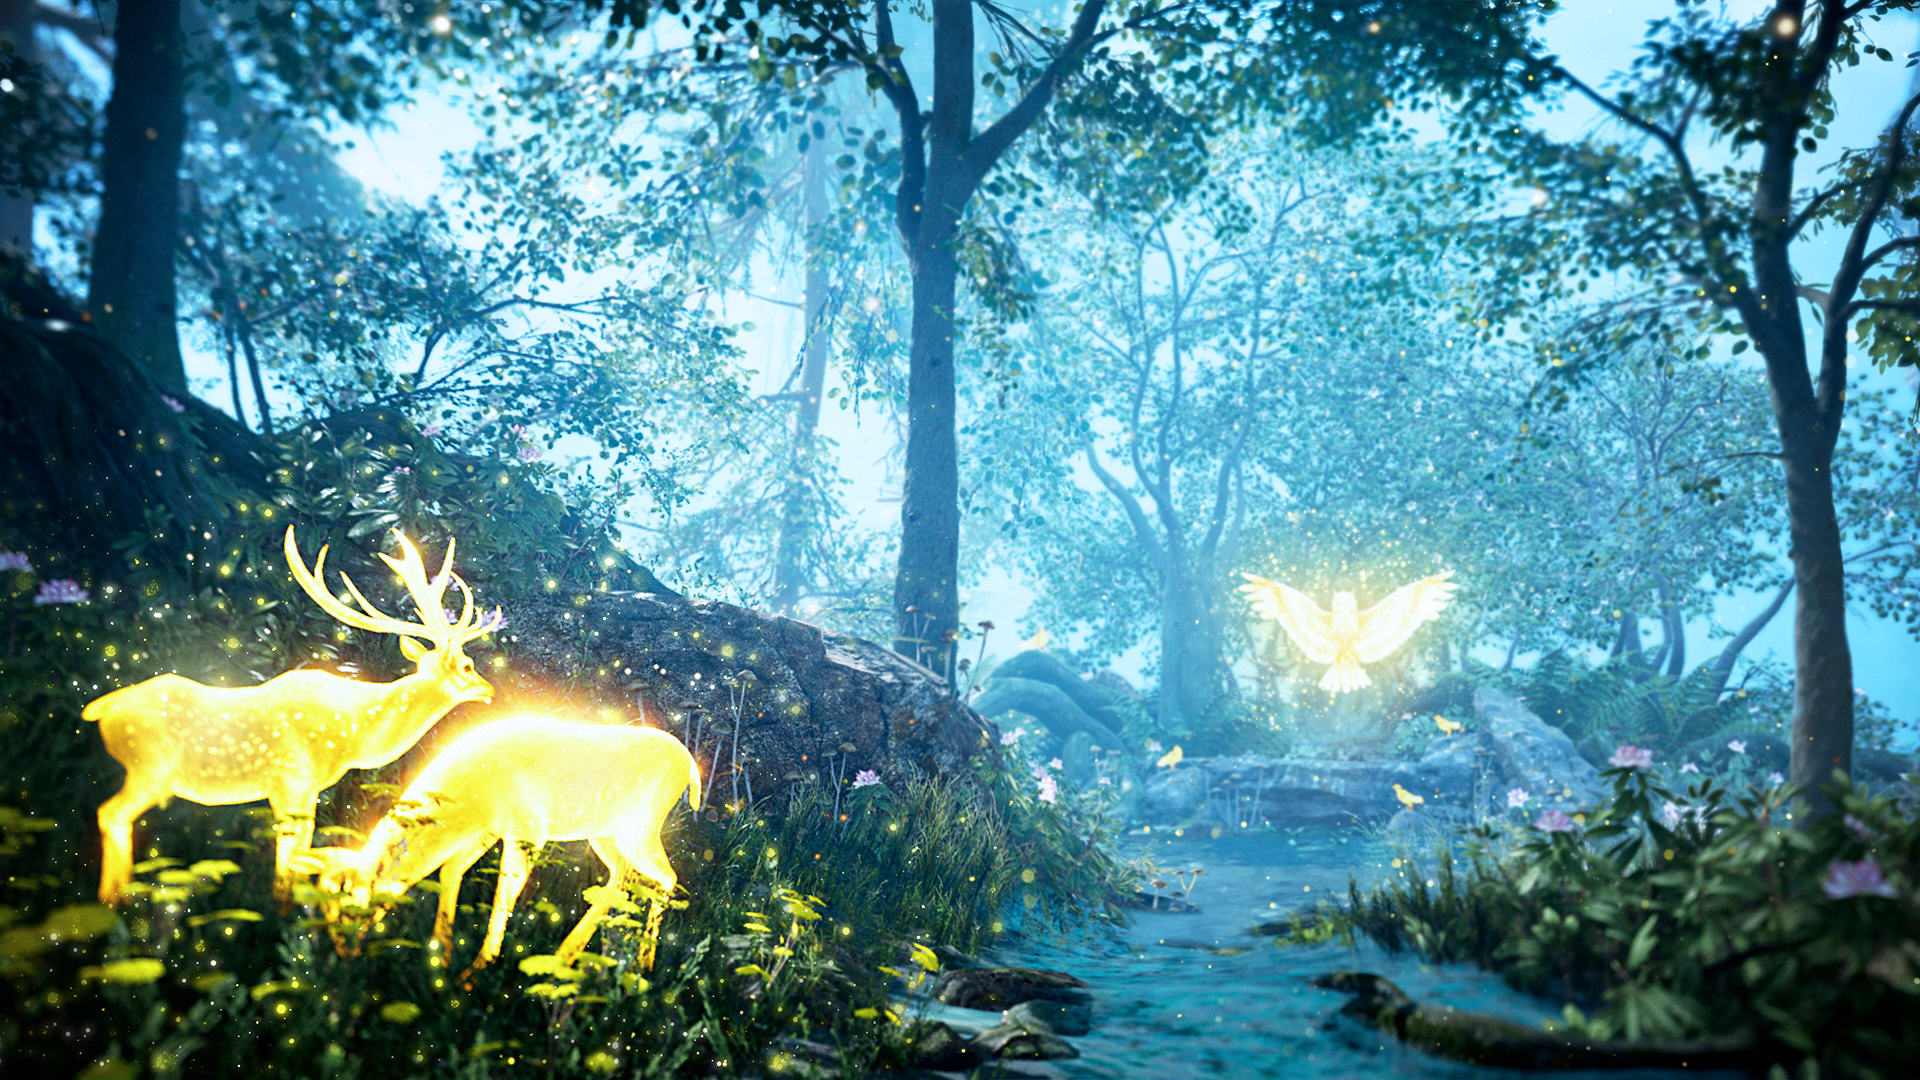 FCP 03 Owl Vision Screenshots PREVIEW PR 160126 6pm CET 1453716680 Far Cry Primal Is Shameless Pre Historic Fun, If A Little Shallow